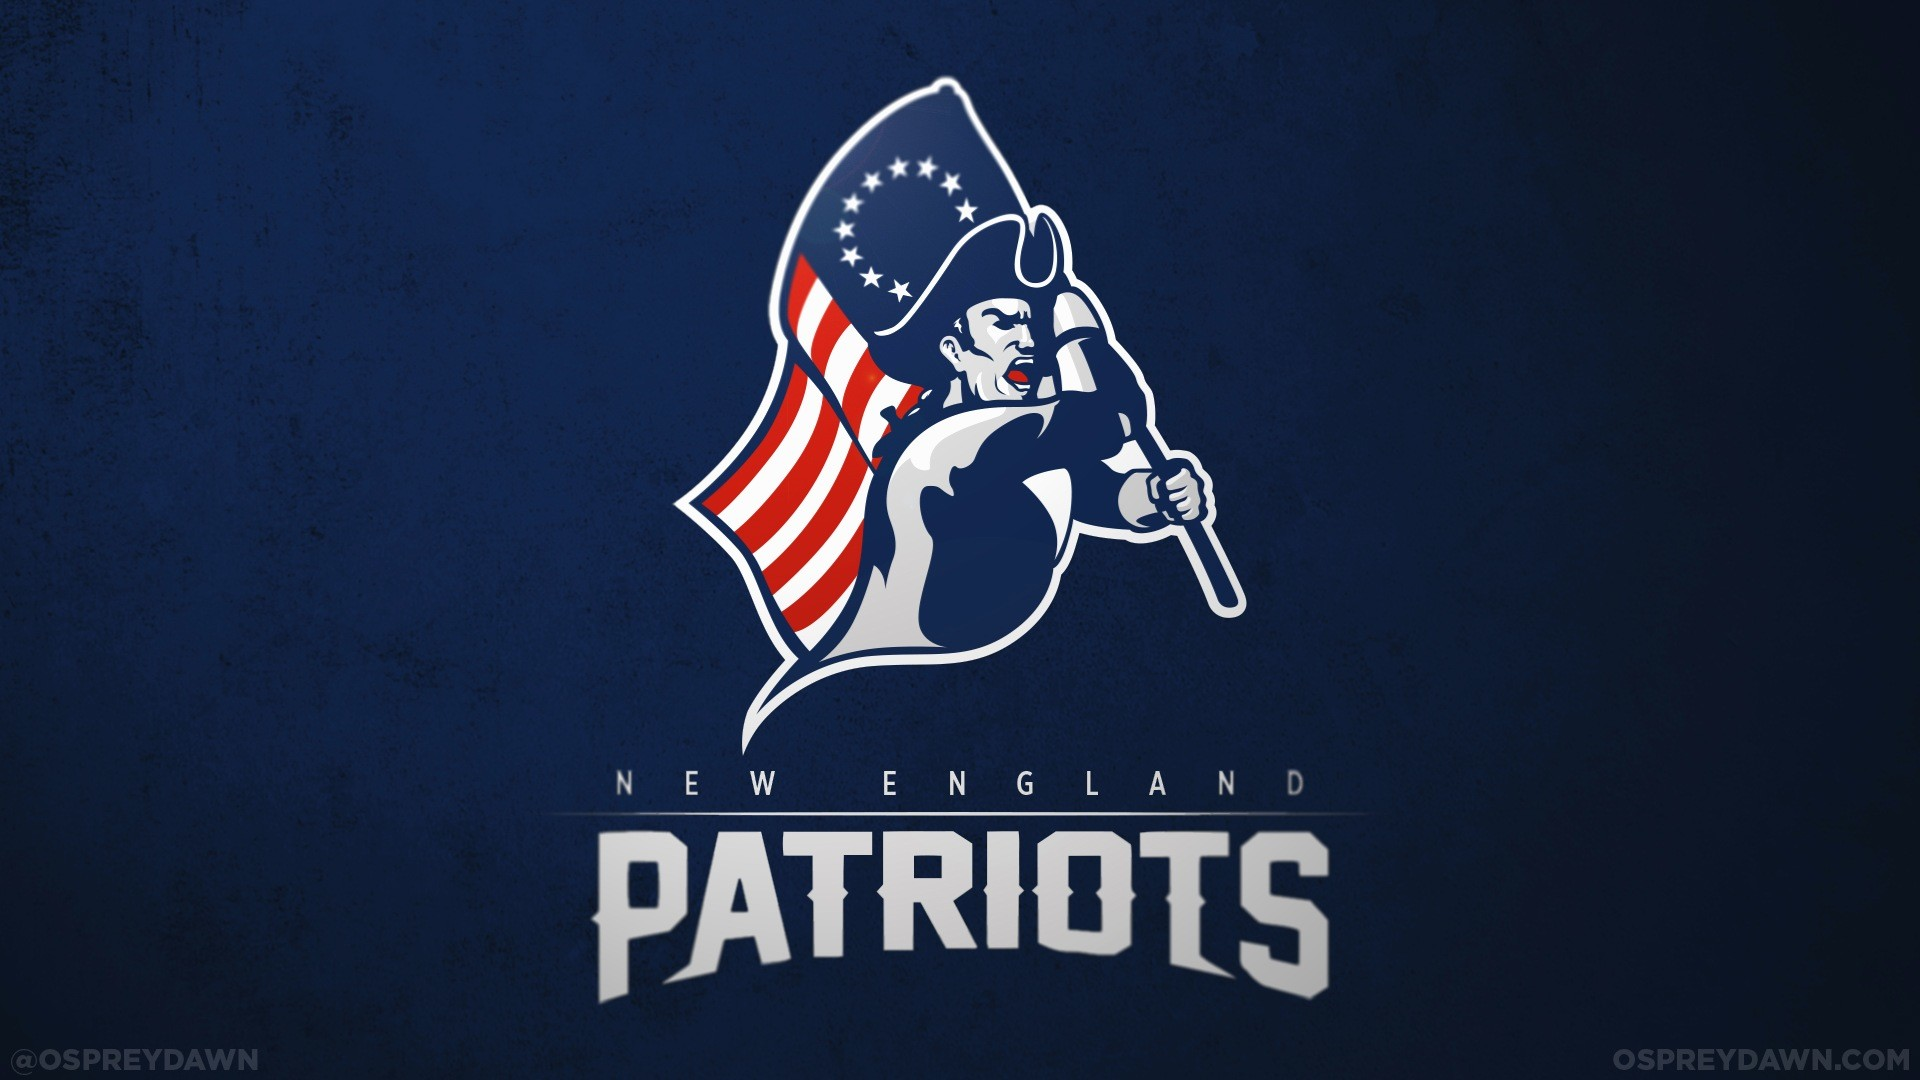 1920x1080 New England Patriots House Flag Better Patriots Wallpaper Hd Group 78  Gallery Of New England Patriots